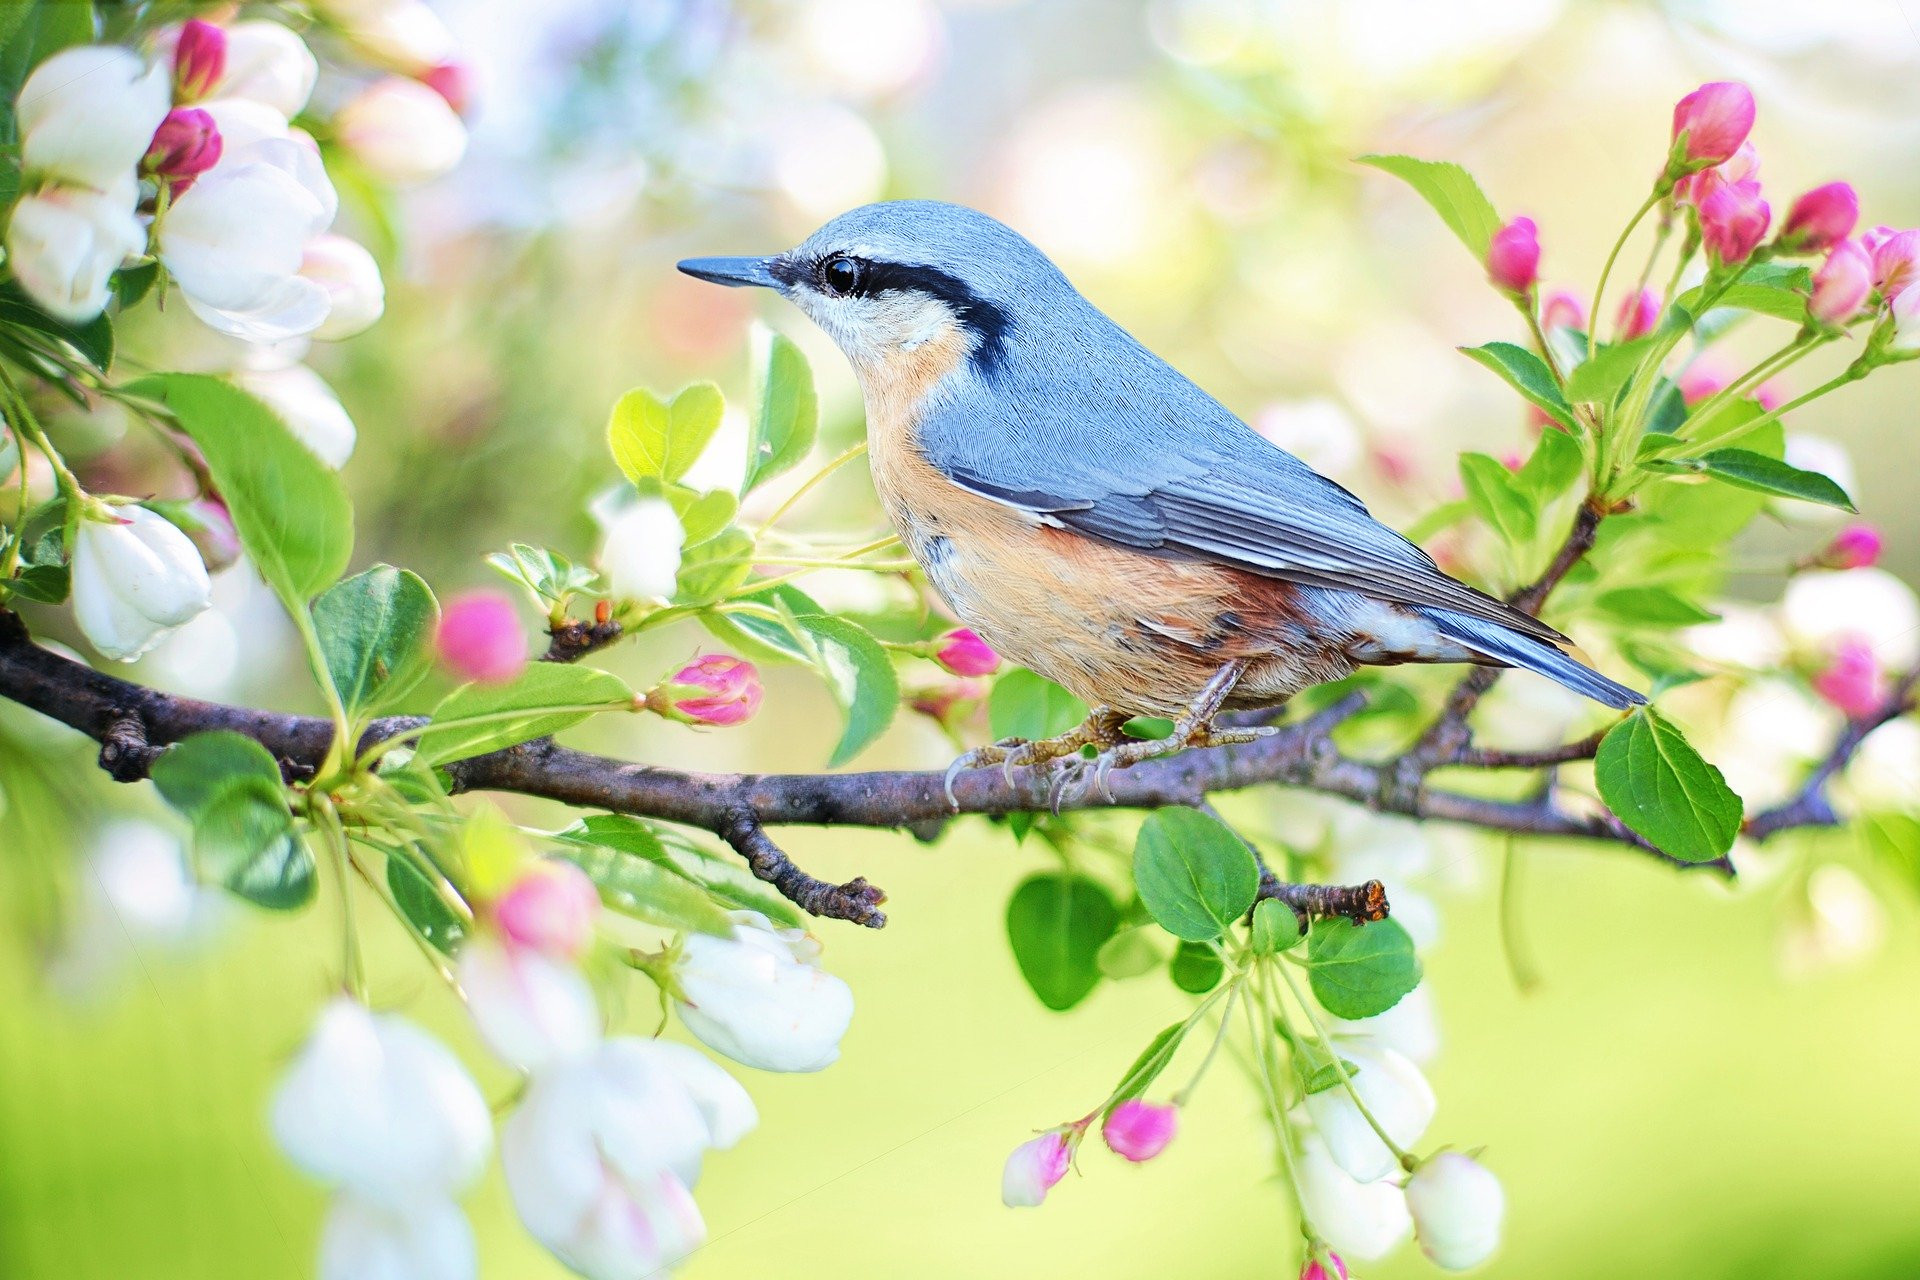 A blue bird on a branch covered in flower buds